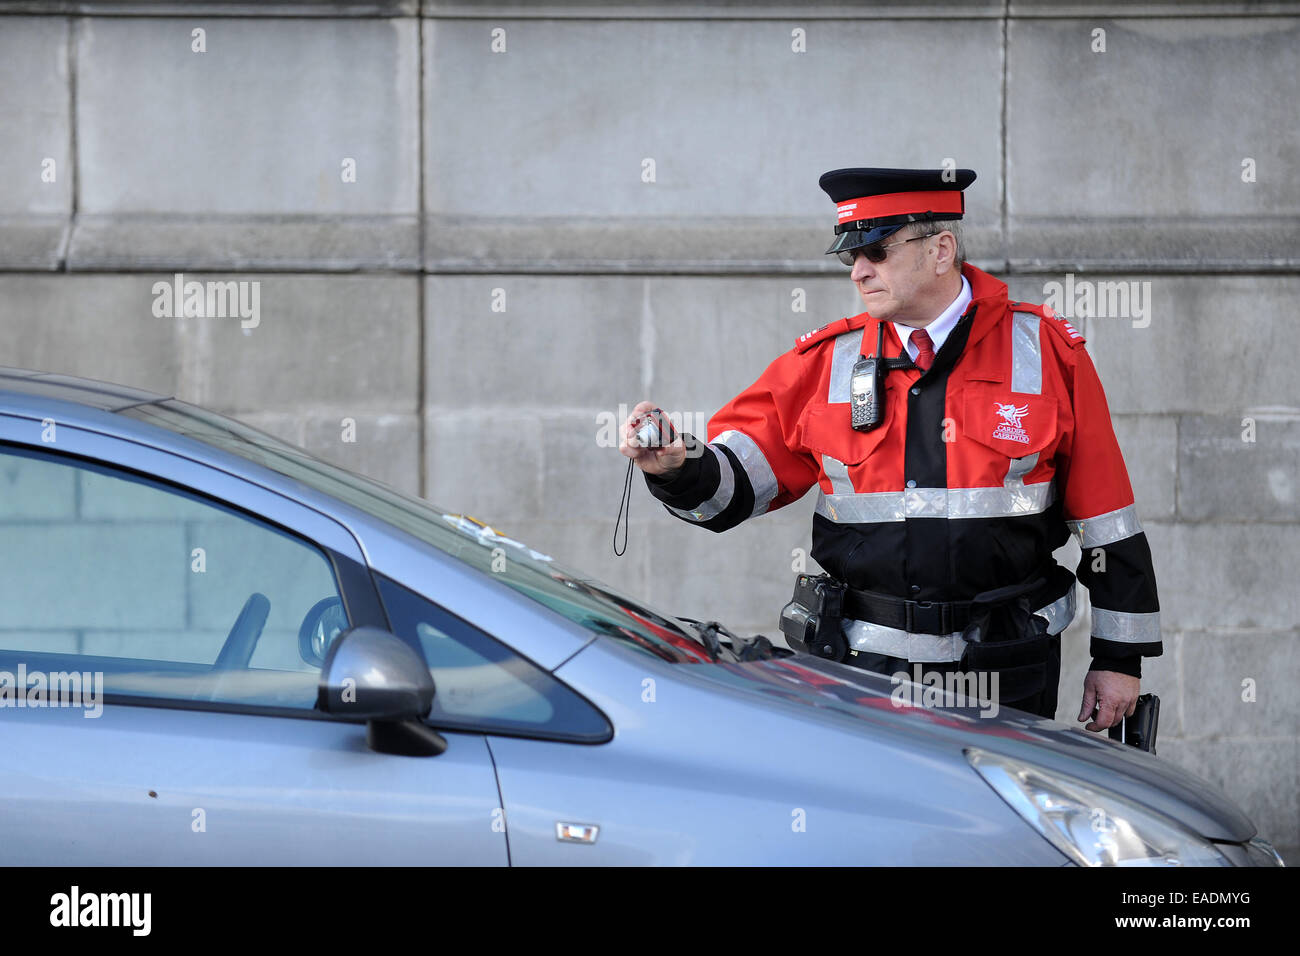 A traffic warden photographs a car after issuing a parking ticket for illegal parking. - Stock Image